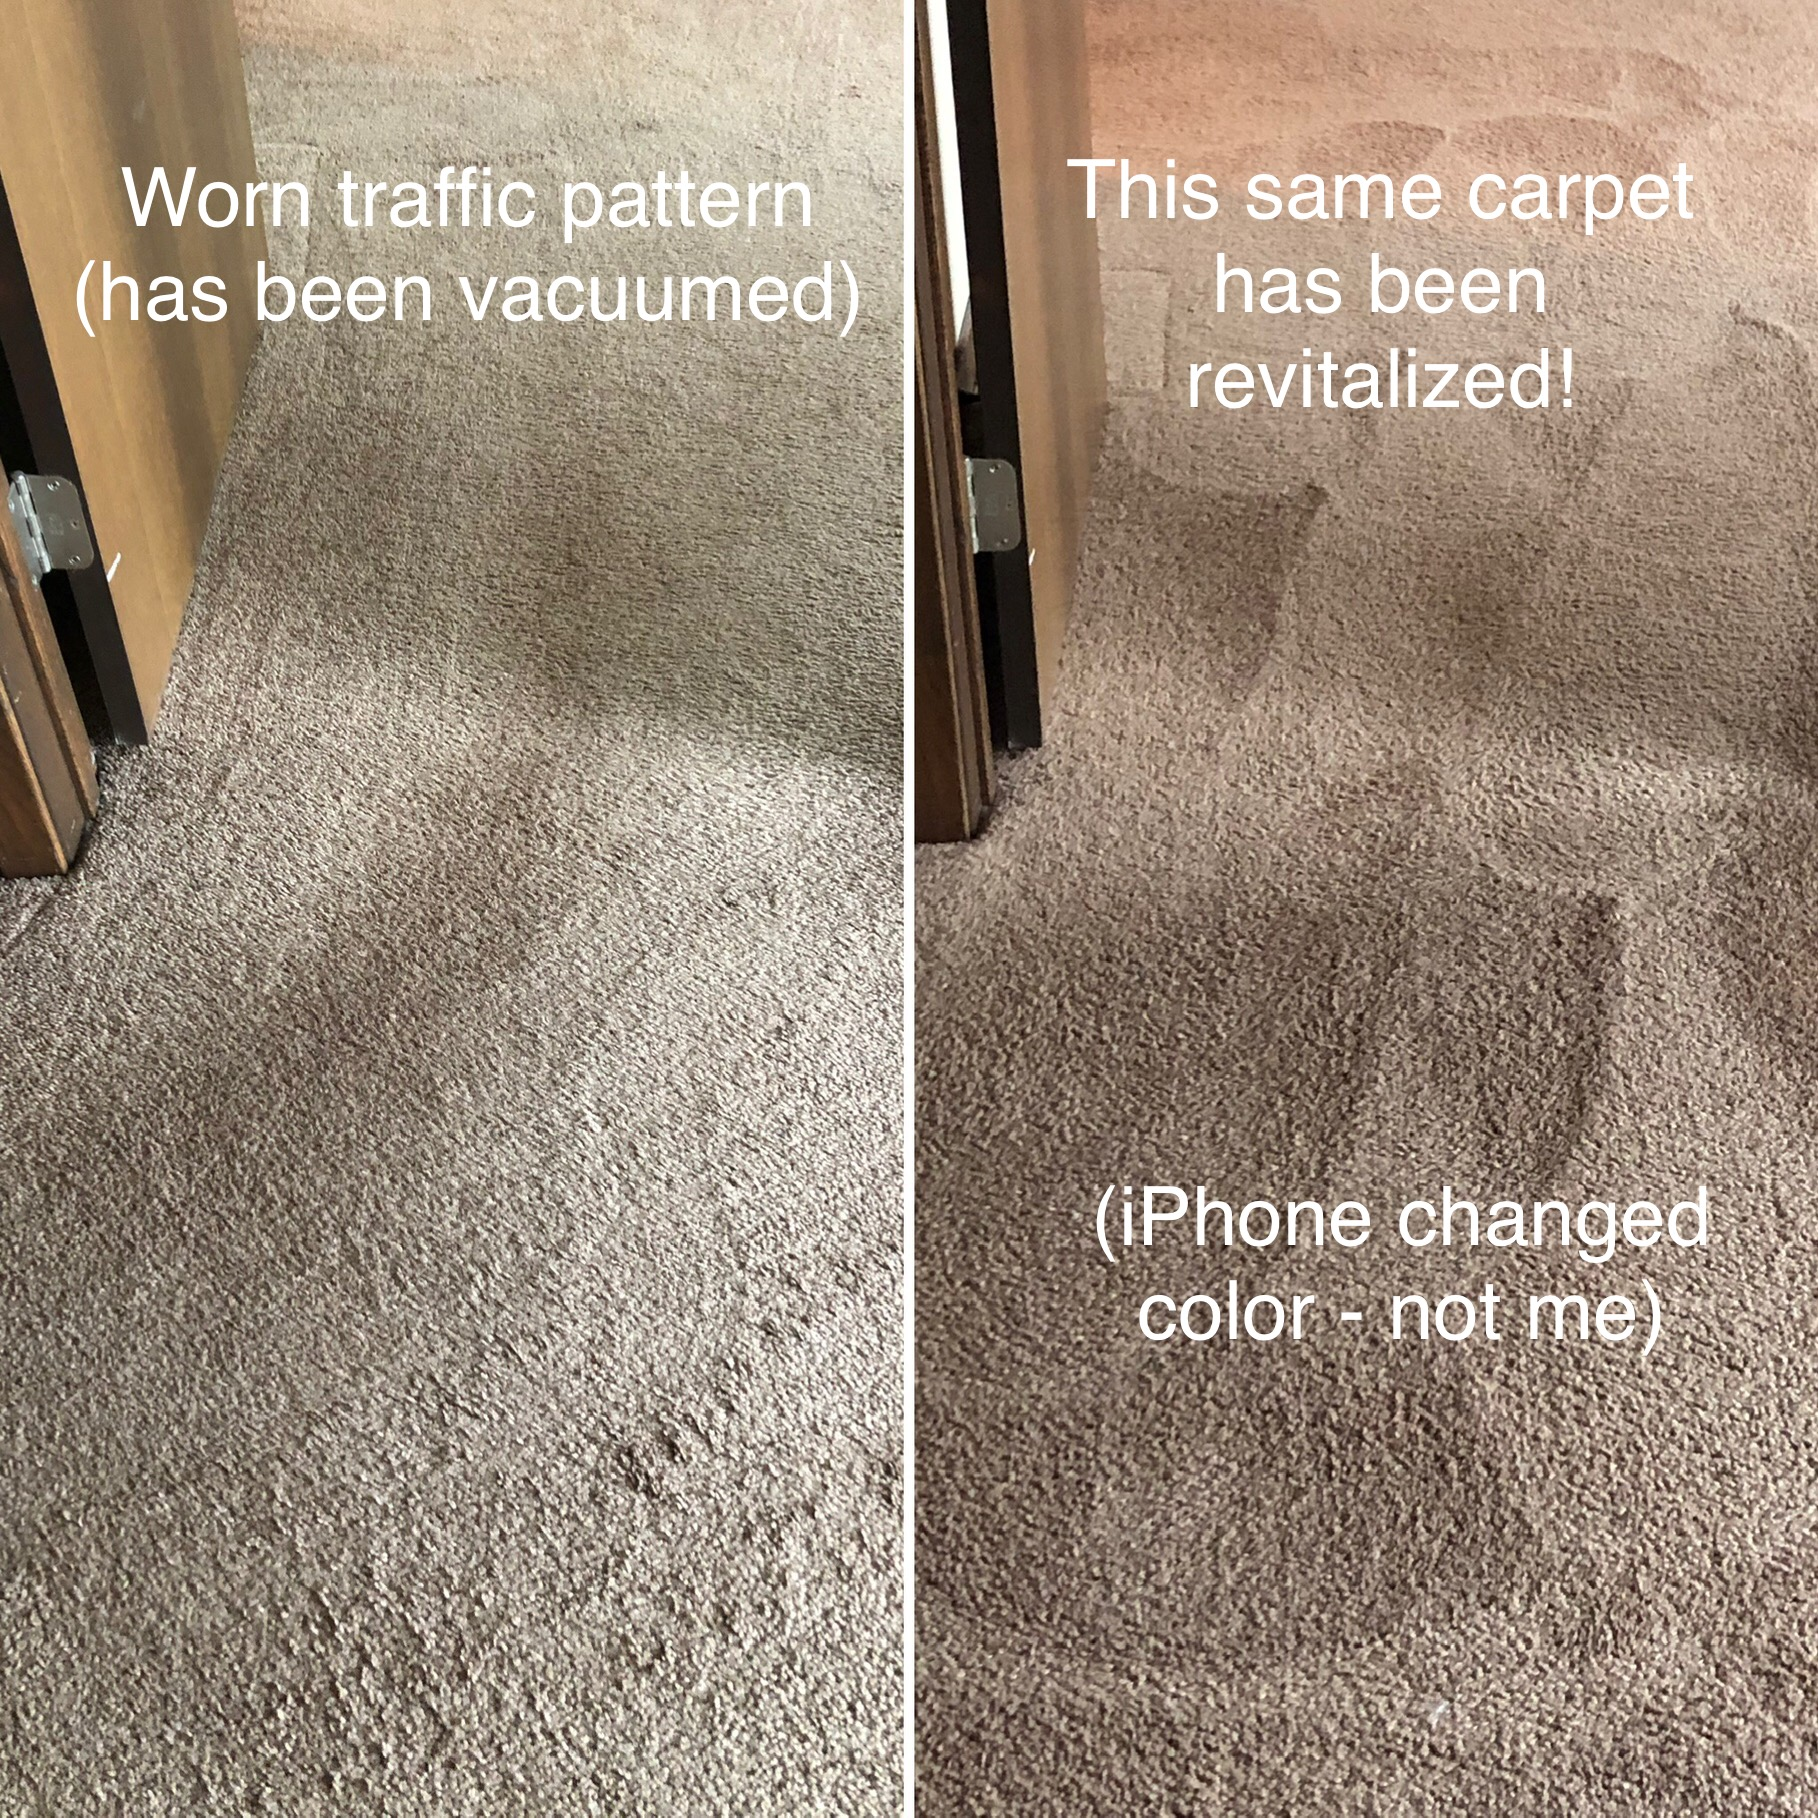 Revitalize Carpet Traffic pattern